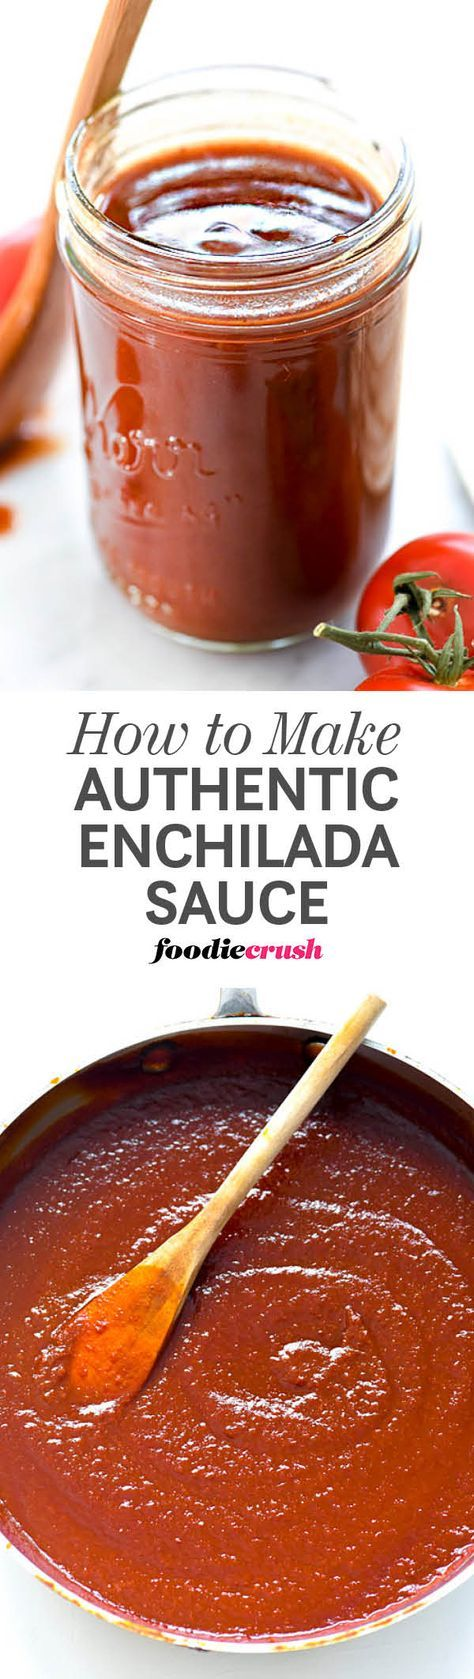 A mix of dried New Mexico and guajillo chiles plus Mexican spices create an authentic homemade red enchilada sauce for enchiladas, chilaquiles and more. | foodiecrush.com #enchilada #sauce